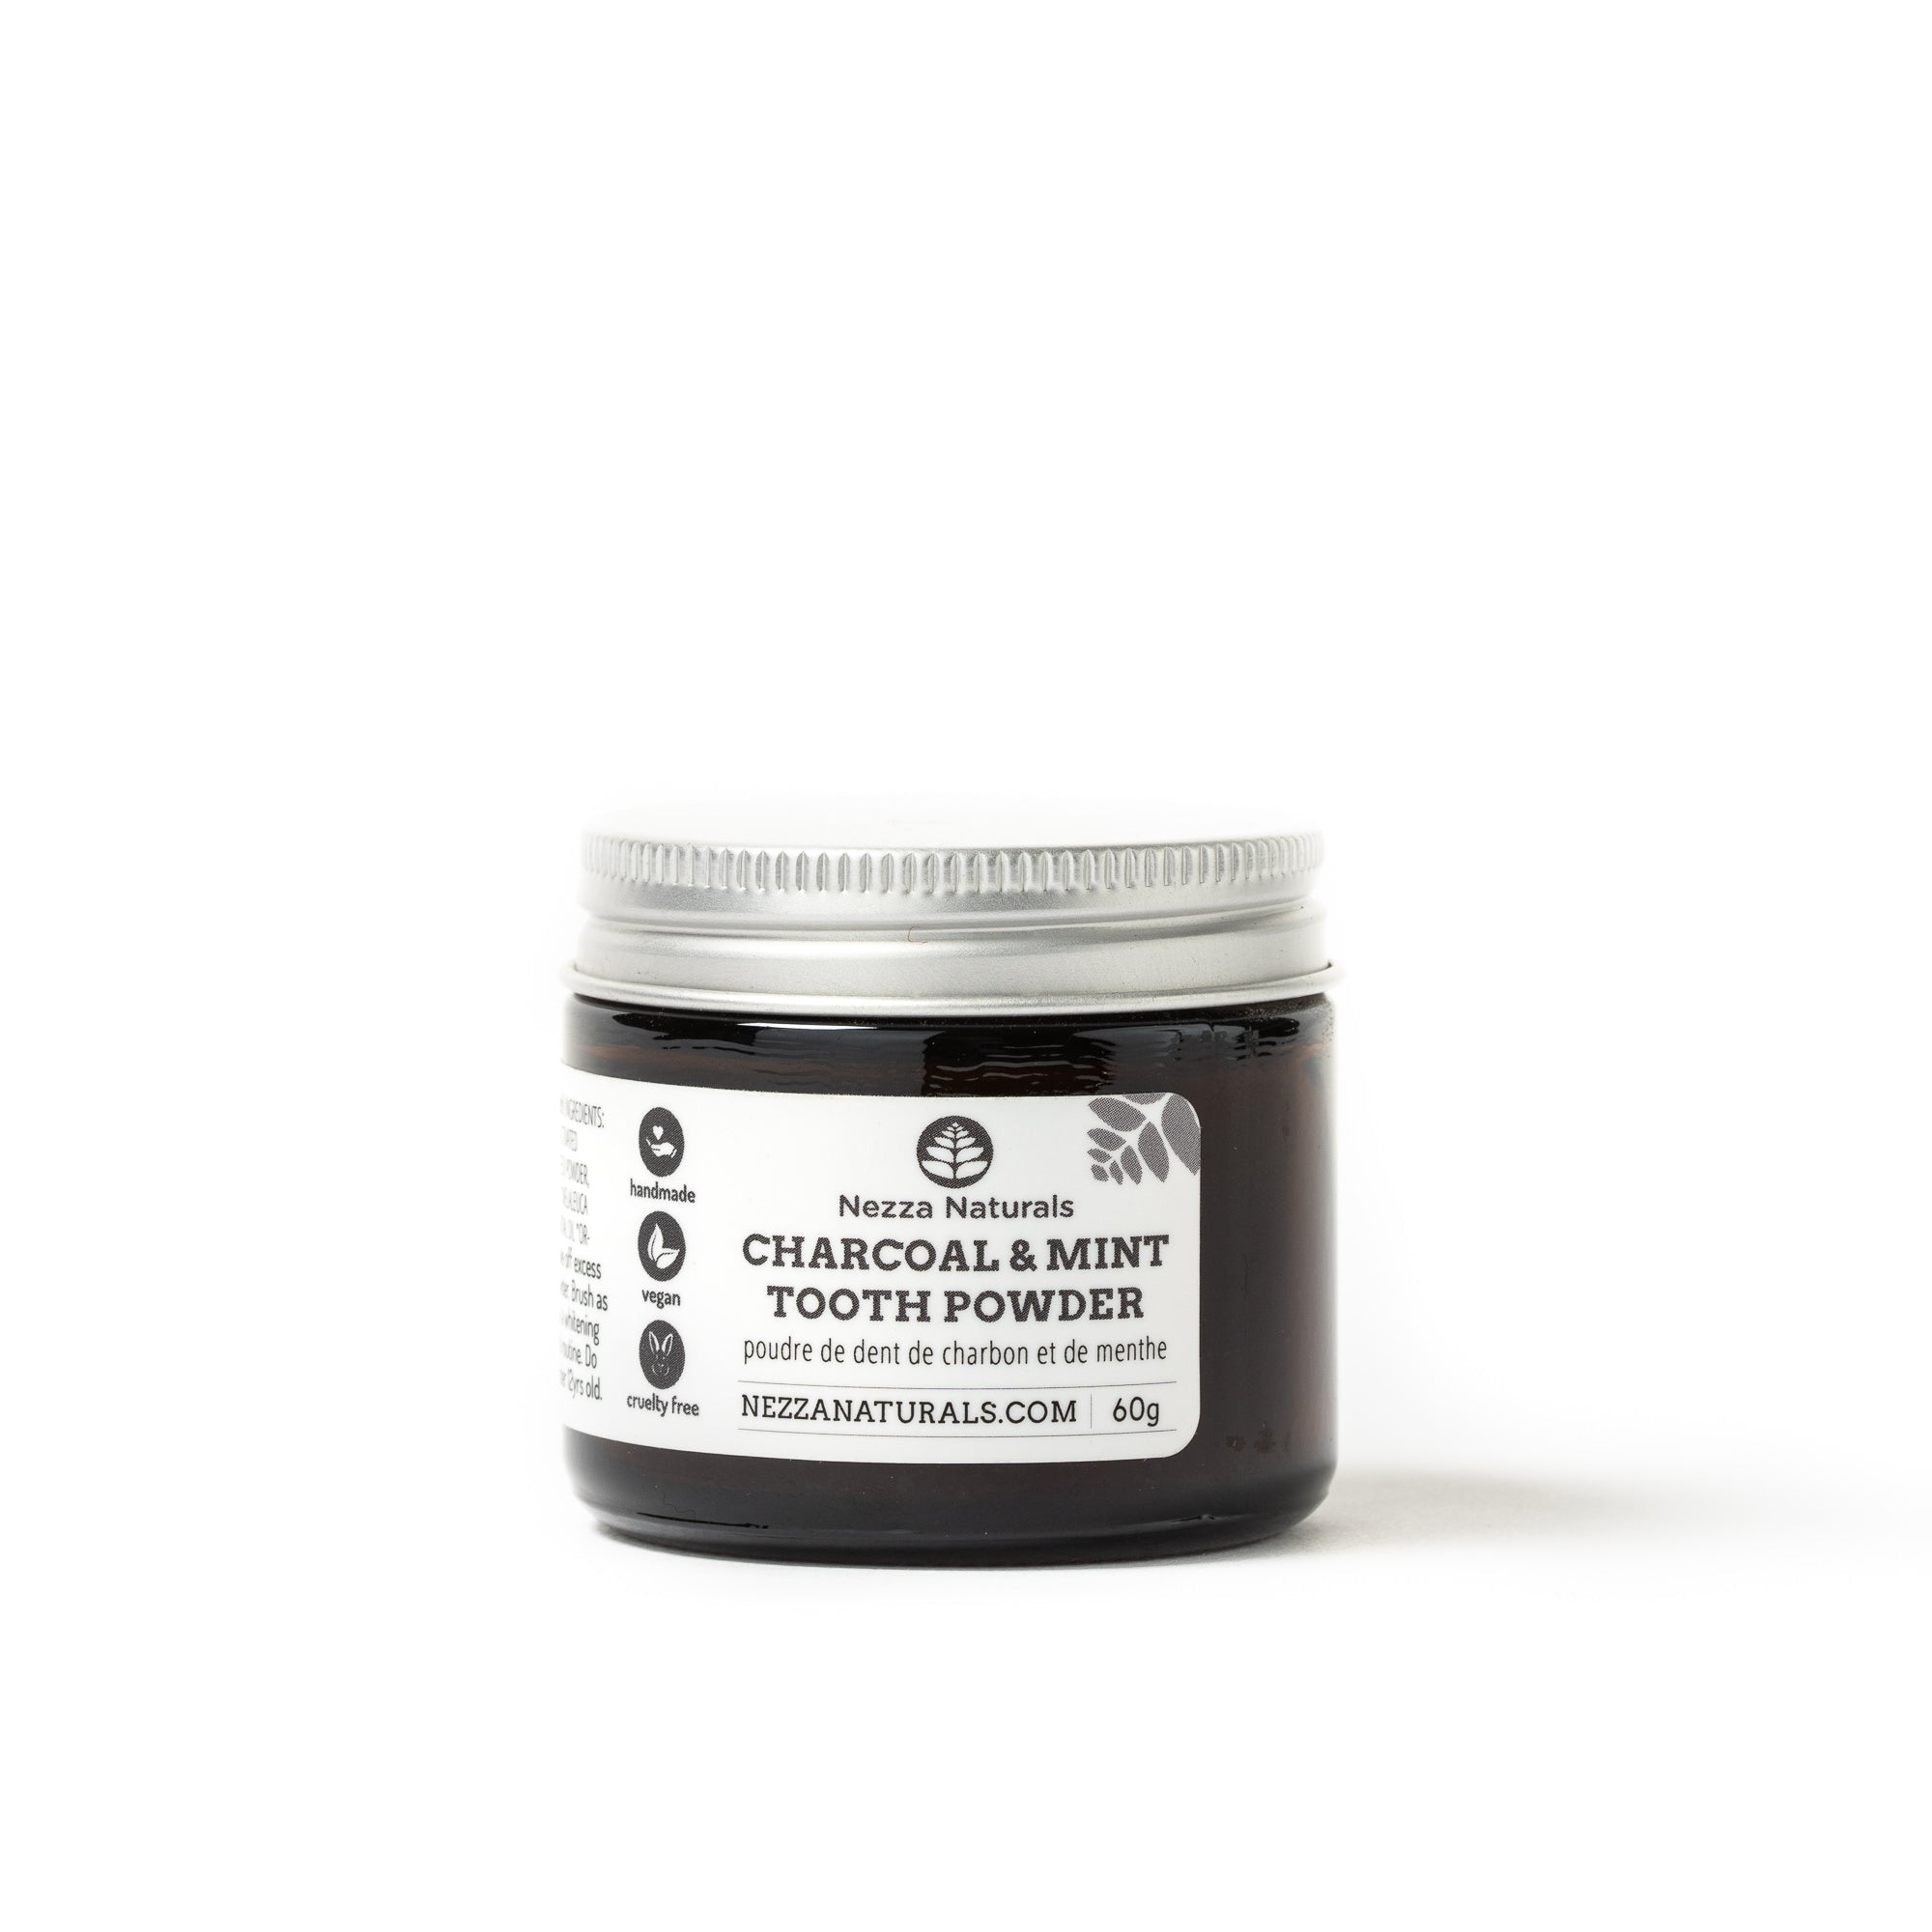 Charcoal & Mint Tooth Powder